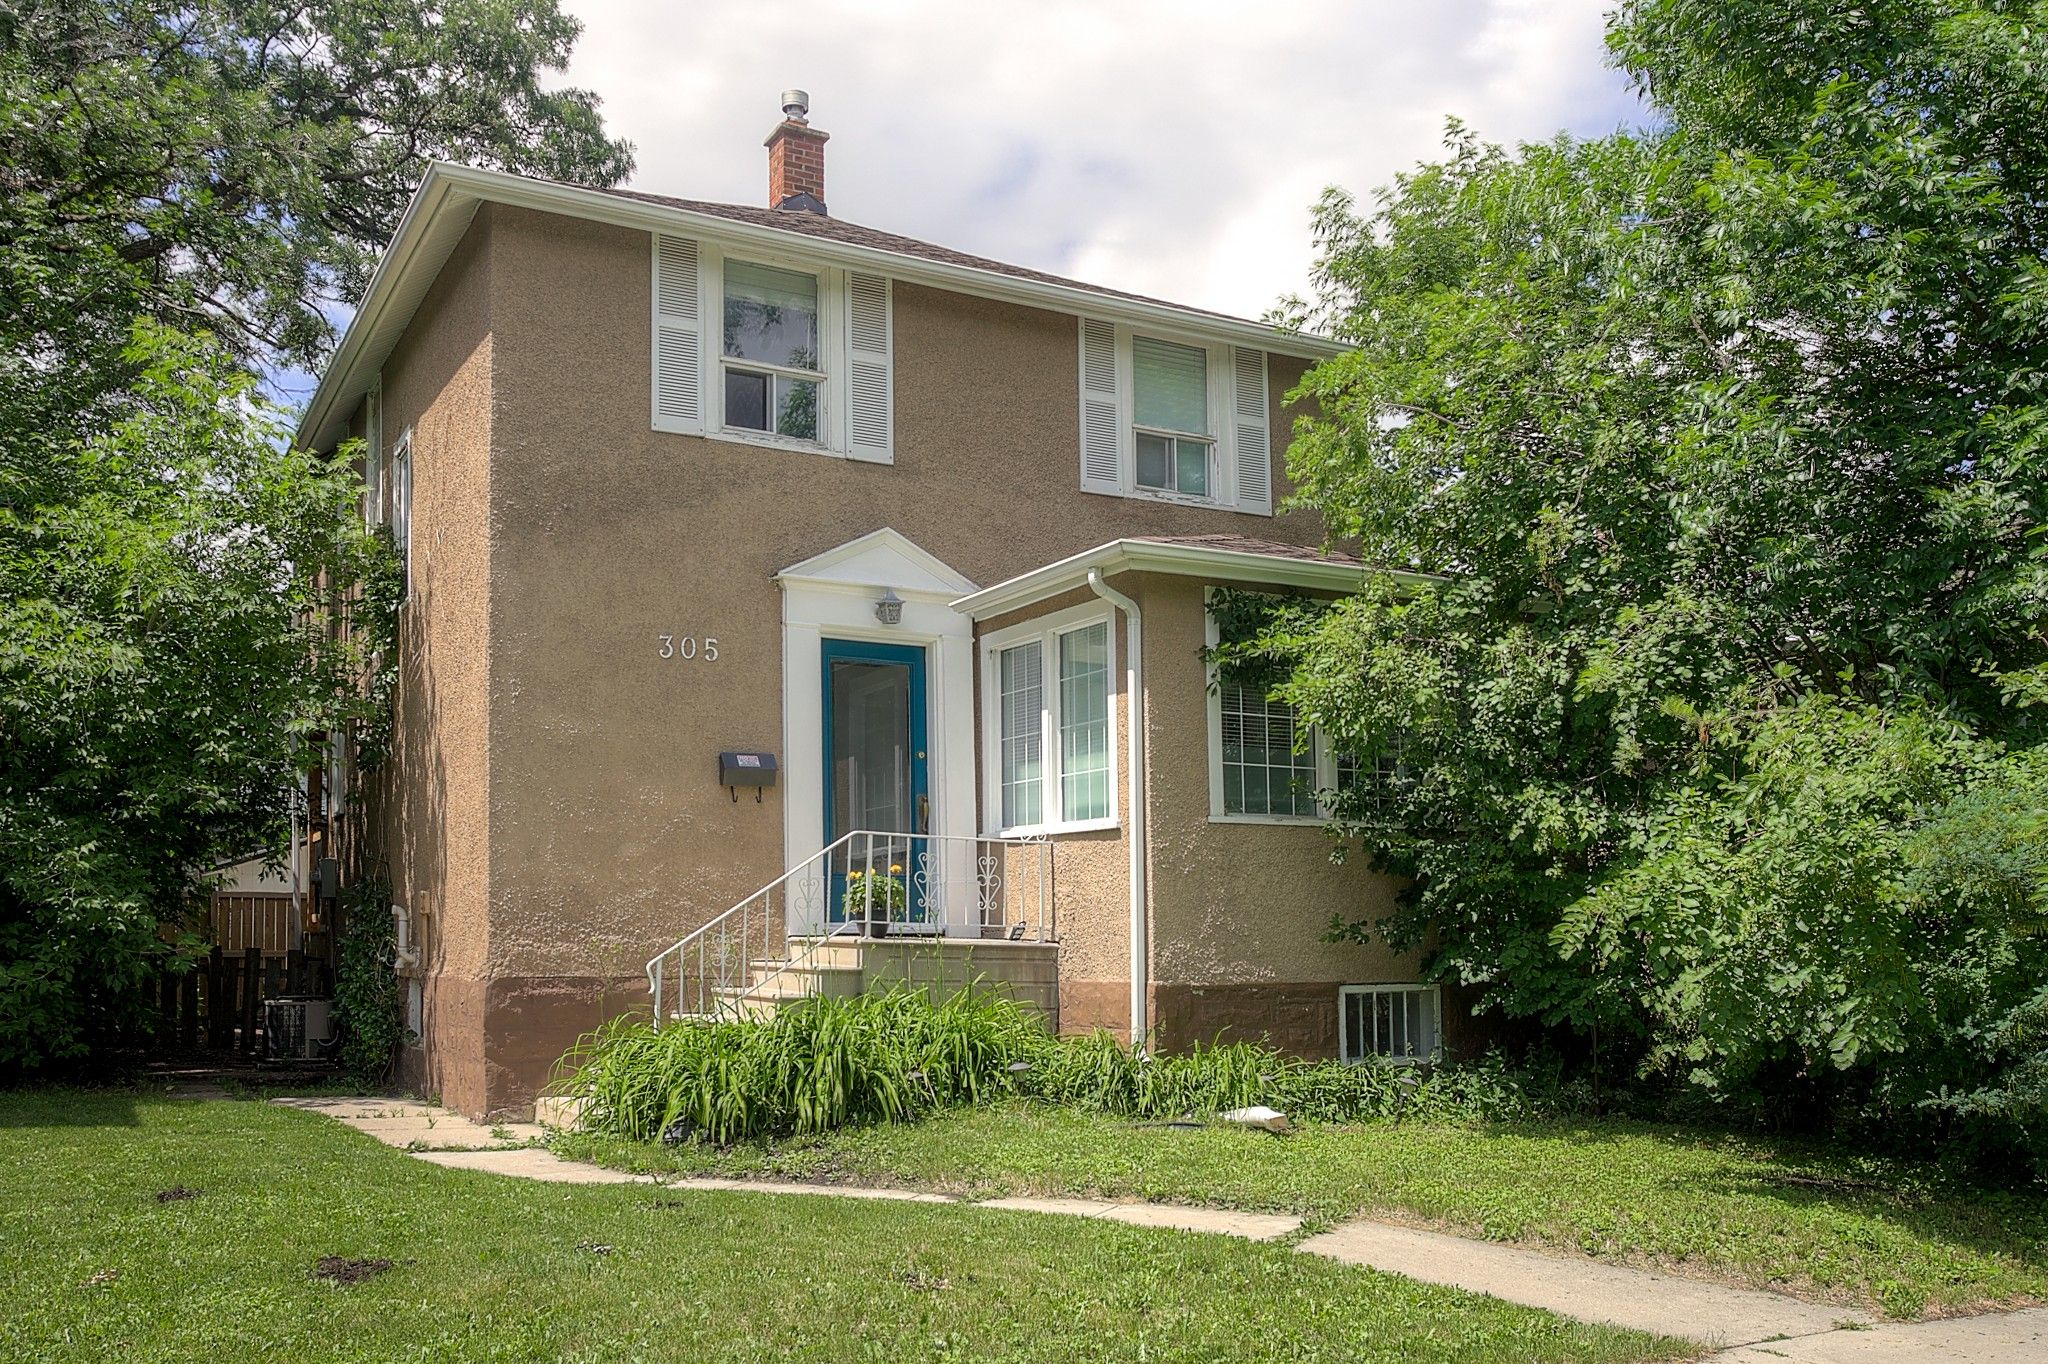 Main Photo: 305 Beaverbrook Street in Winnipeg: Single Family Detached for sale (1C)  : MLS®# 202015362